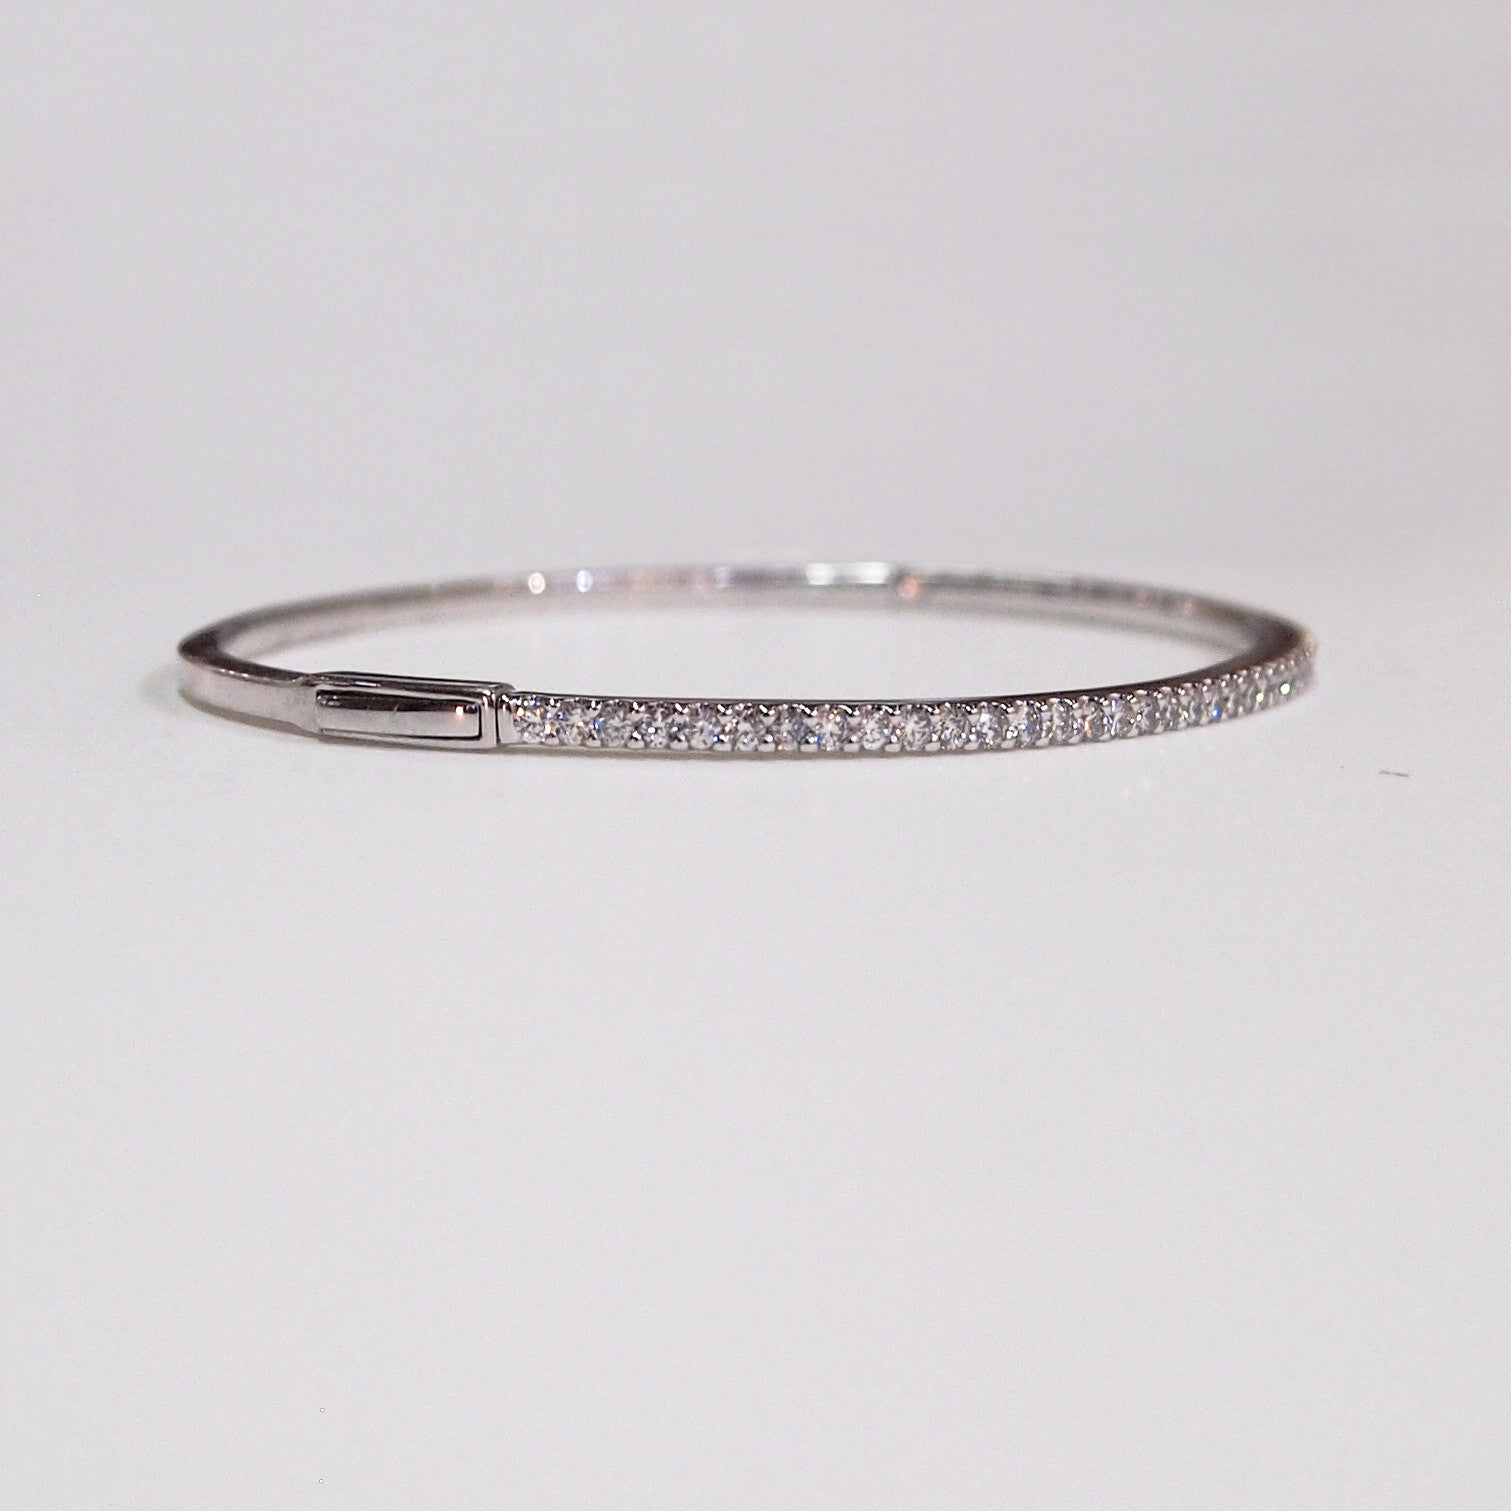 14K white gold bangle bracelet with 49 brilliant cut diamonds